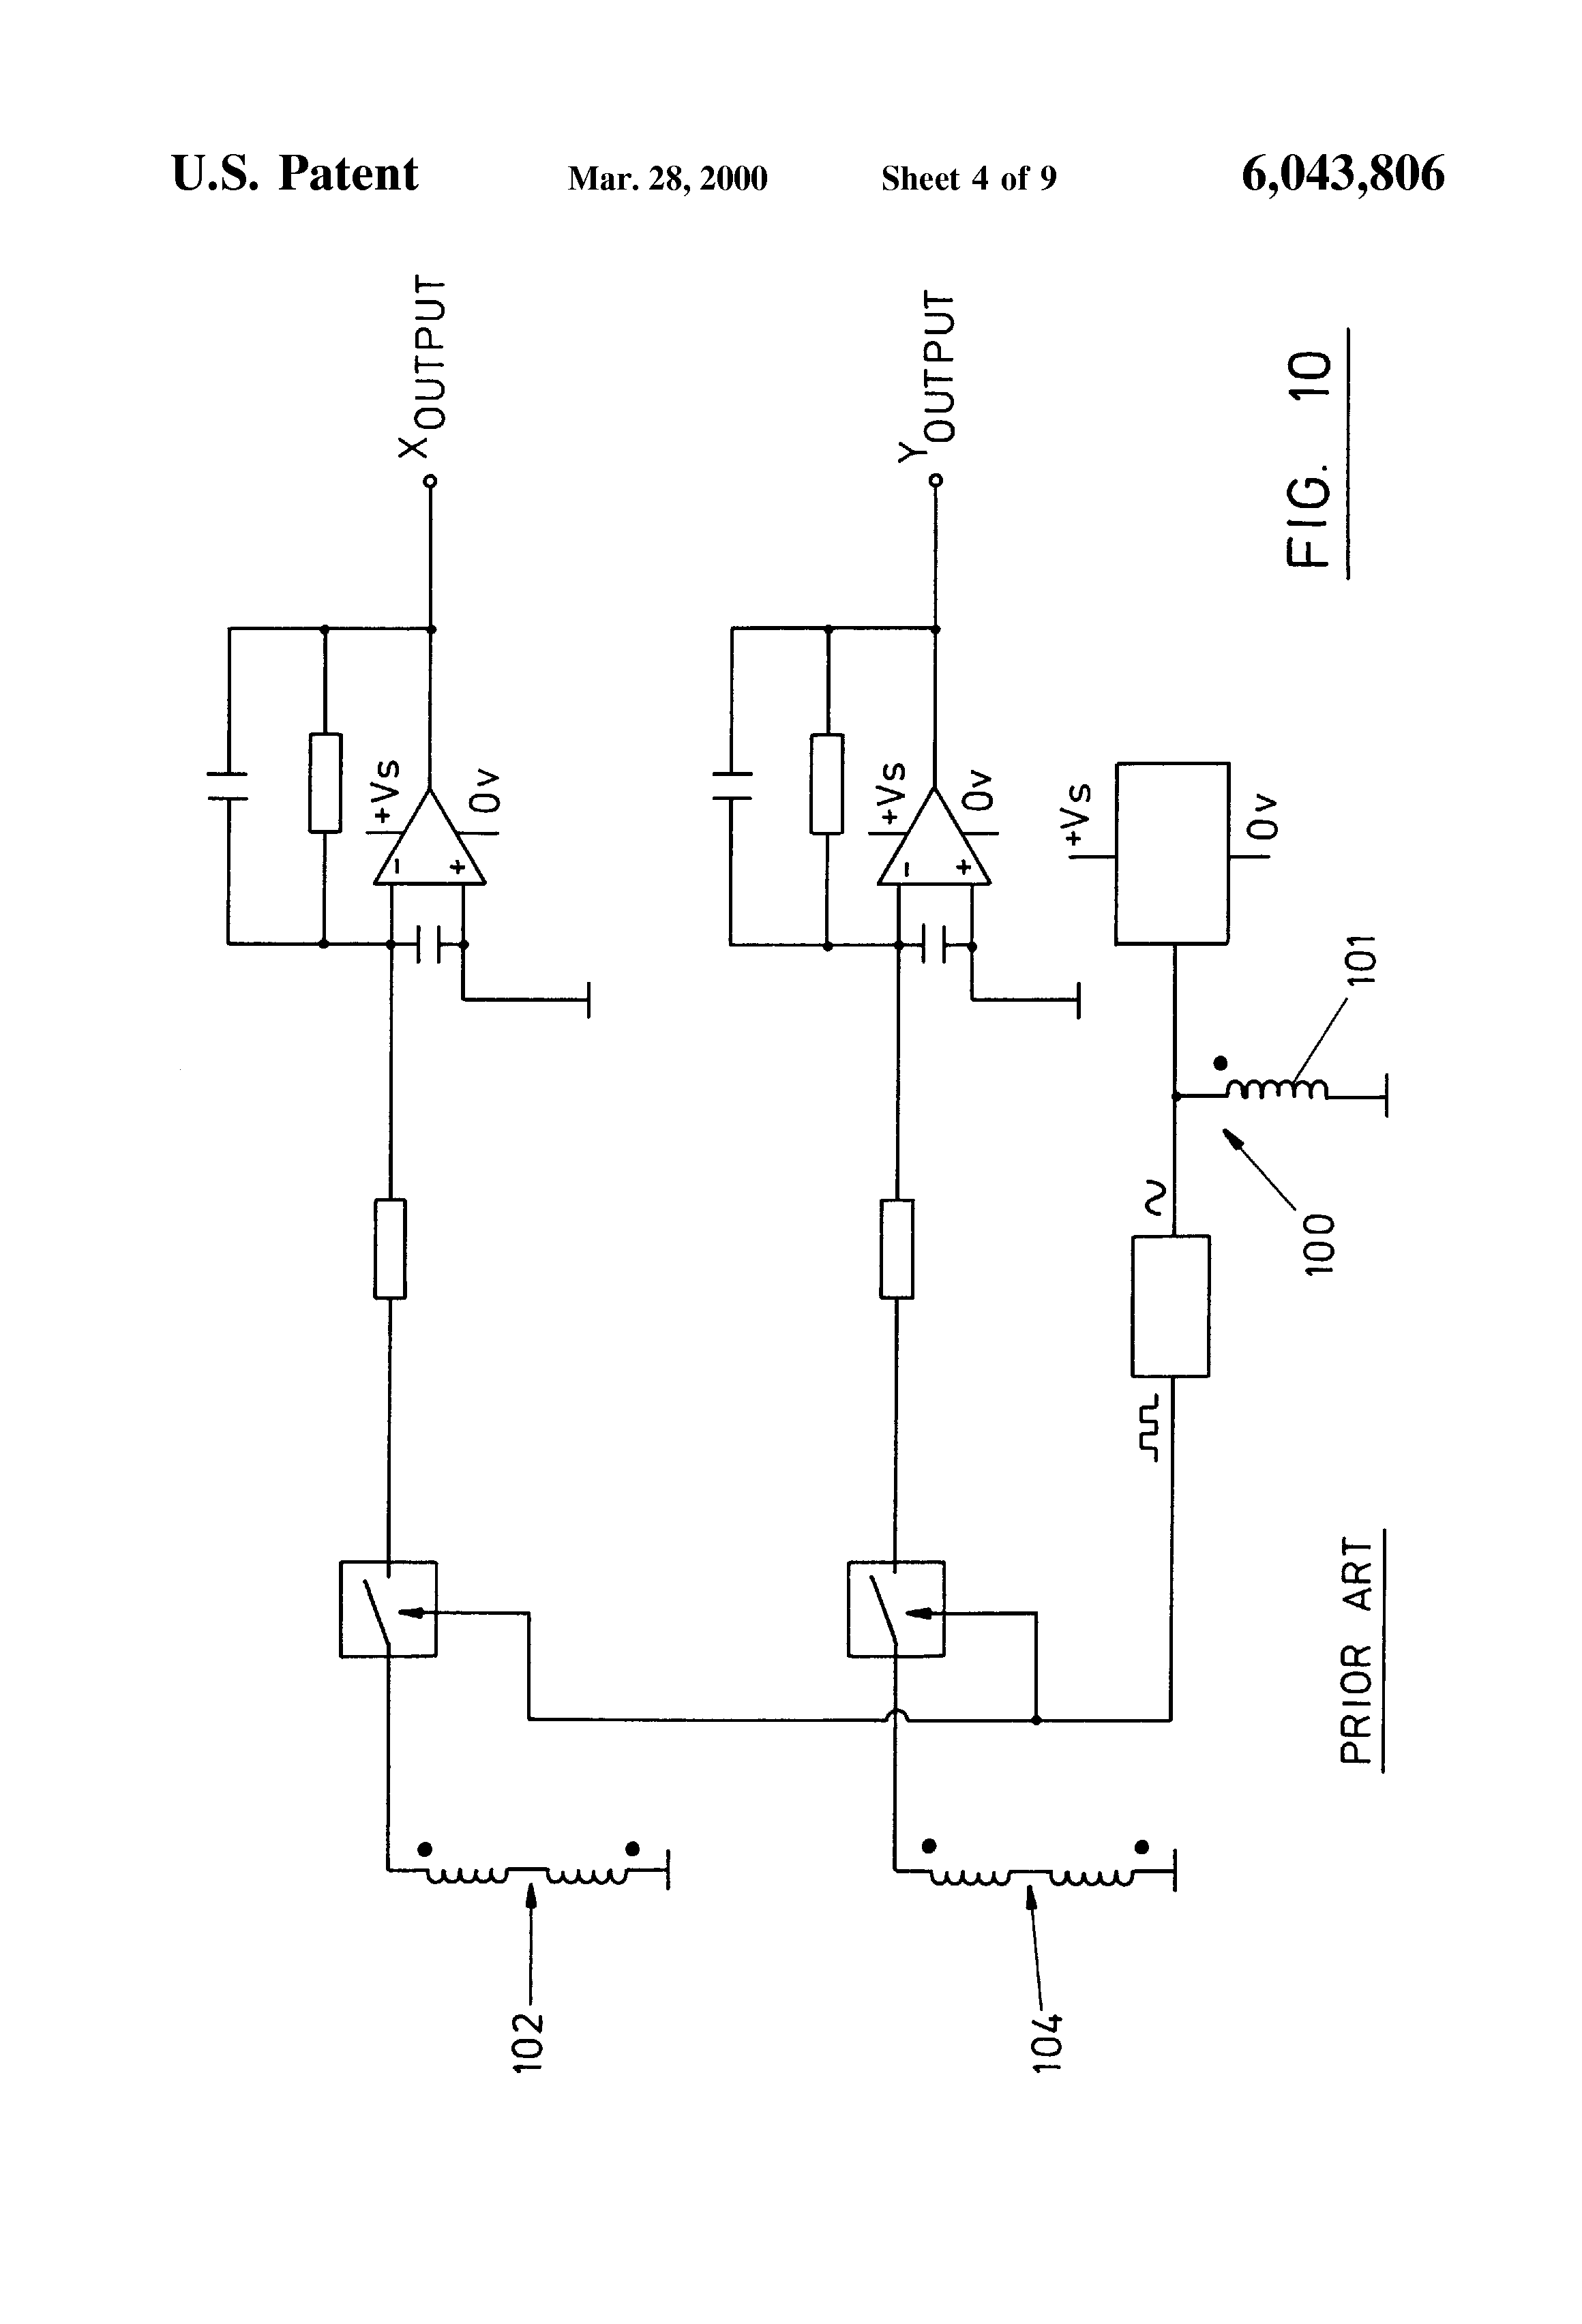 Sauer Danfoss Joystick Wiring Diagram 37 Images Pressure Switch Us6043806 4 Patent Inductive And Signal Processing At Cita